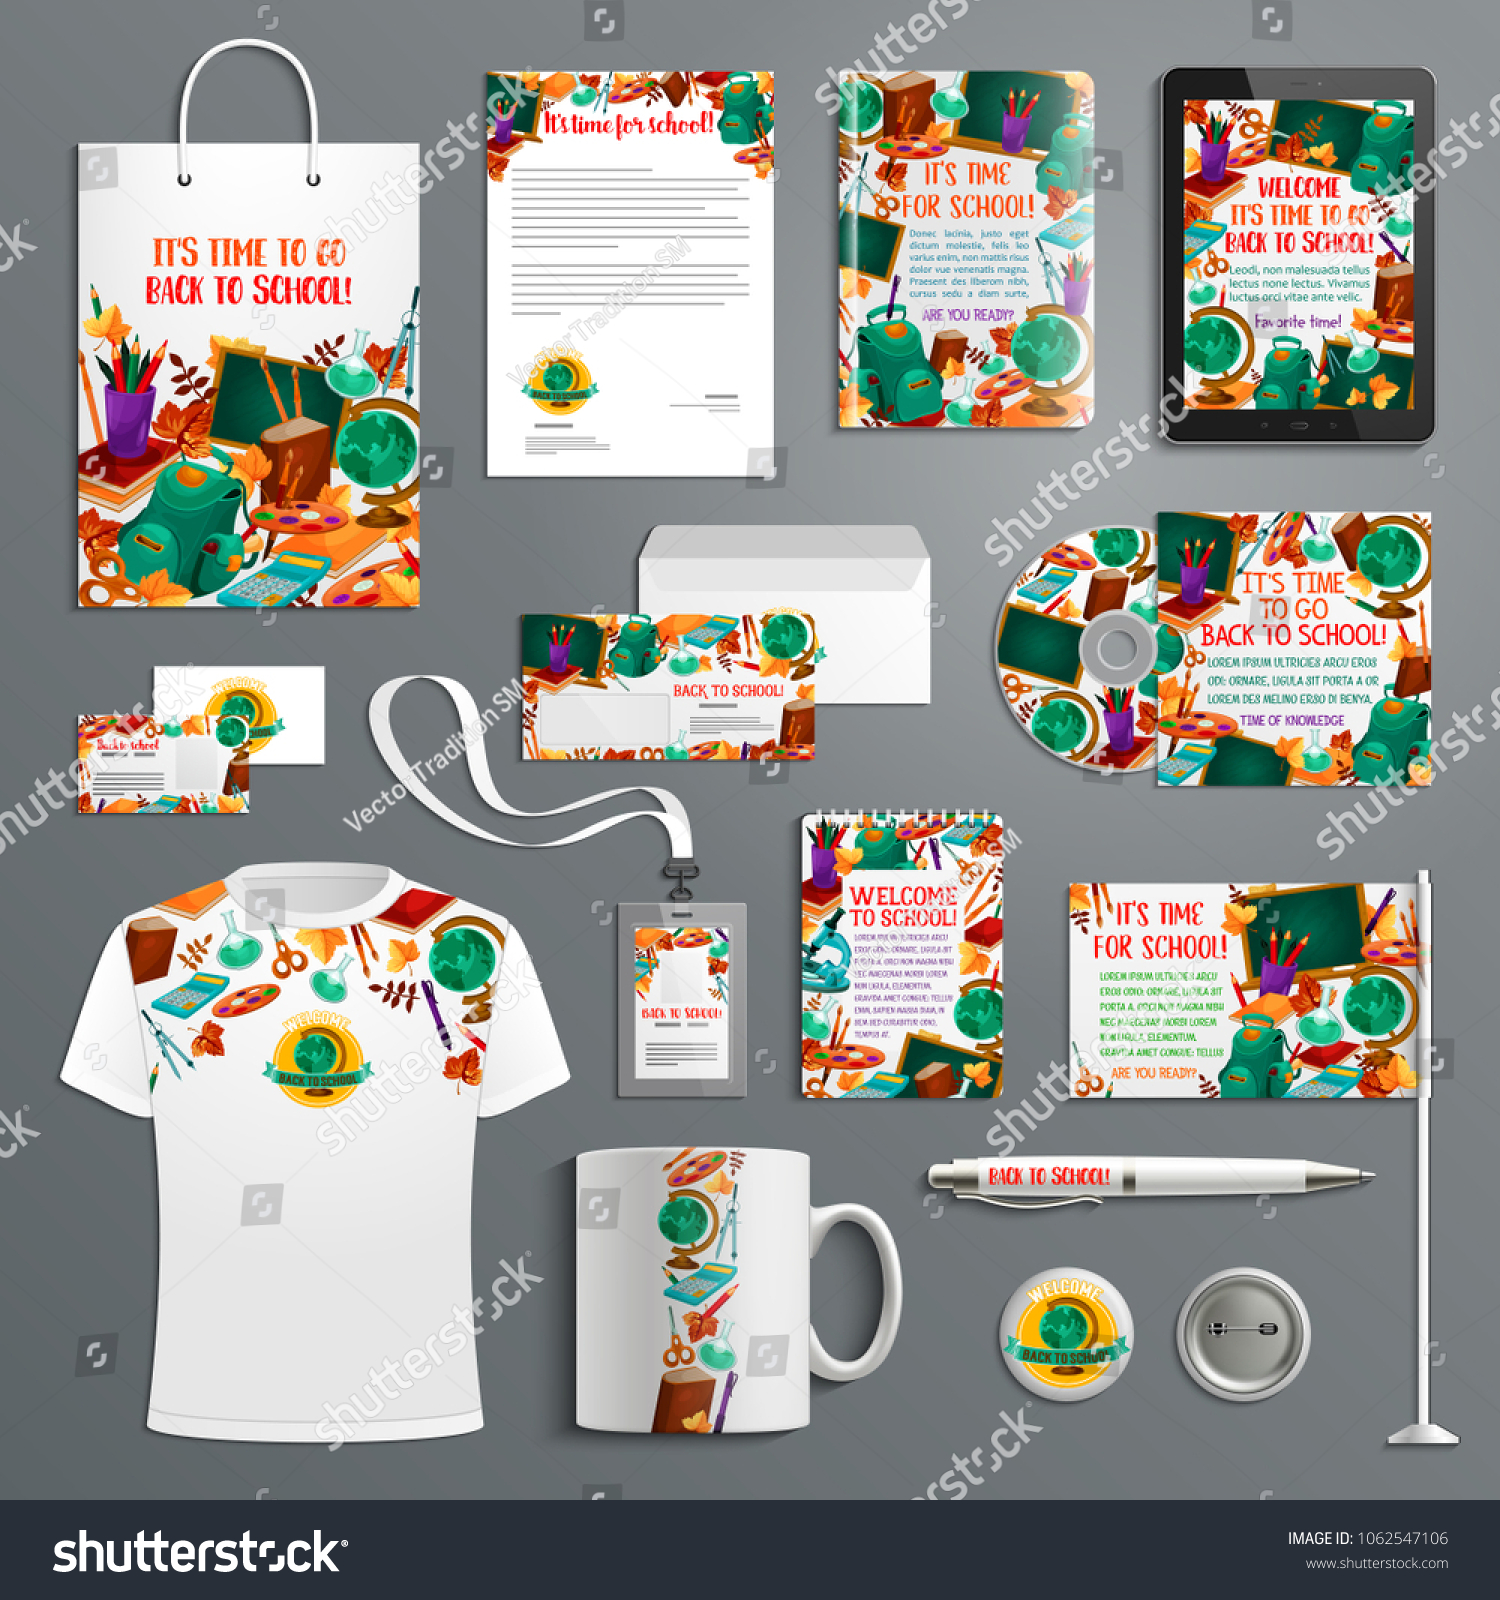 Back School Branded Stationery Education Promo Stock Vector Royalty